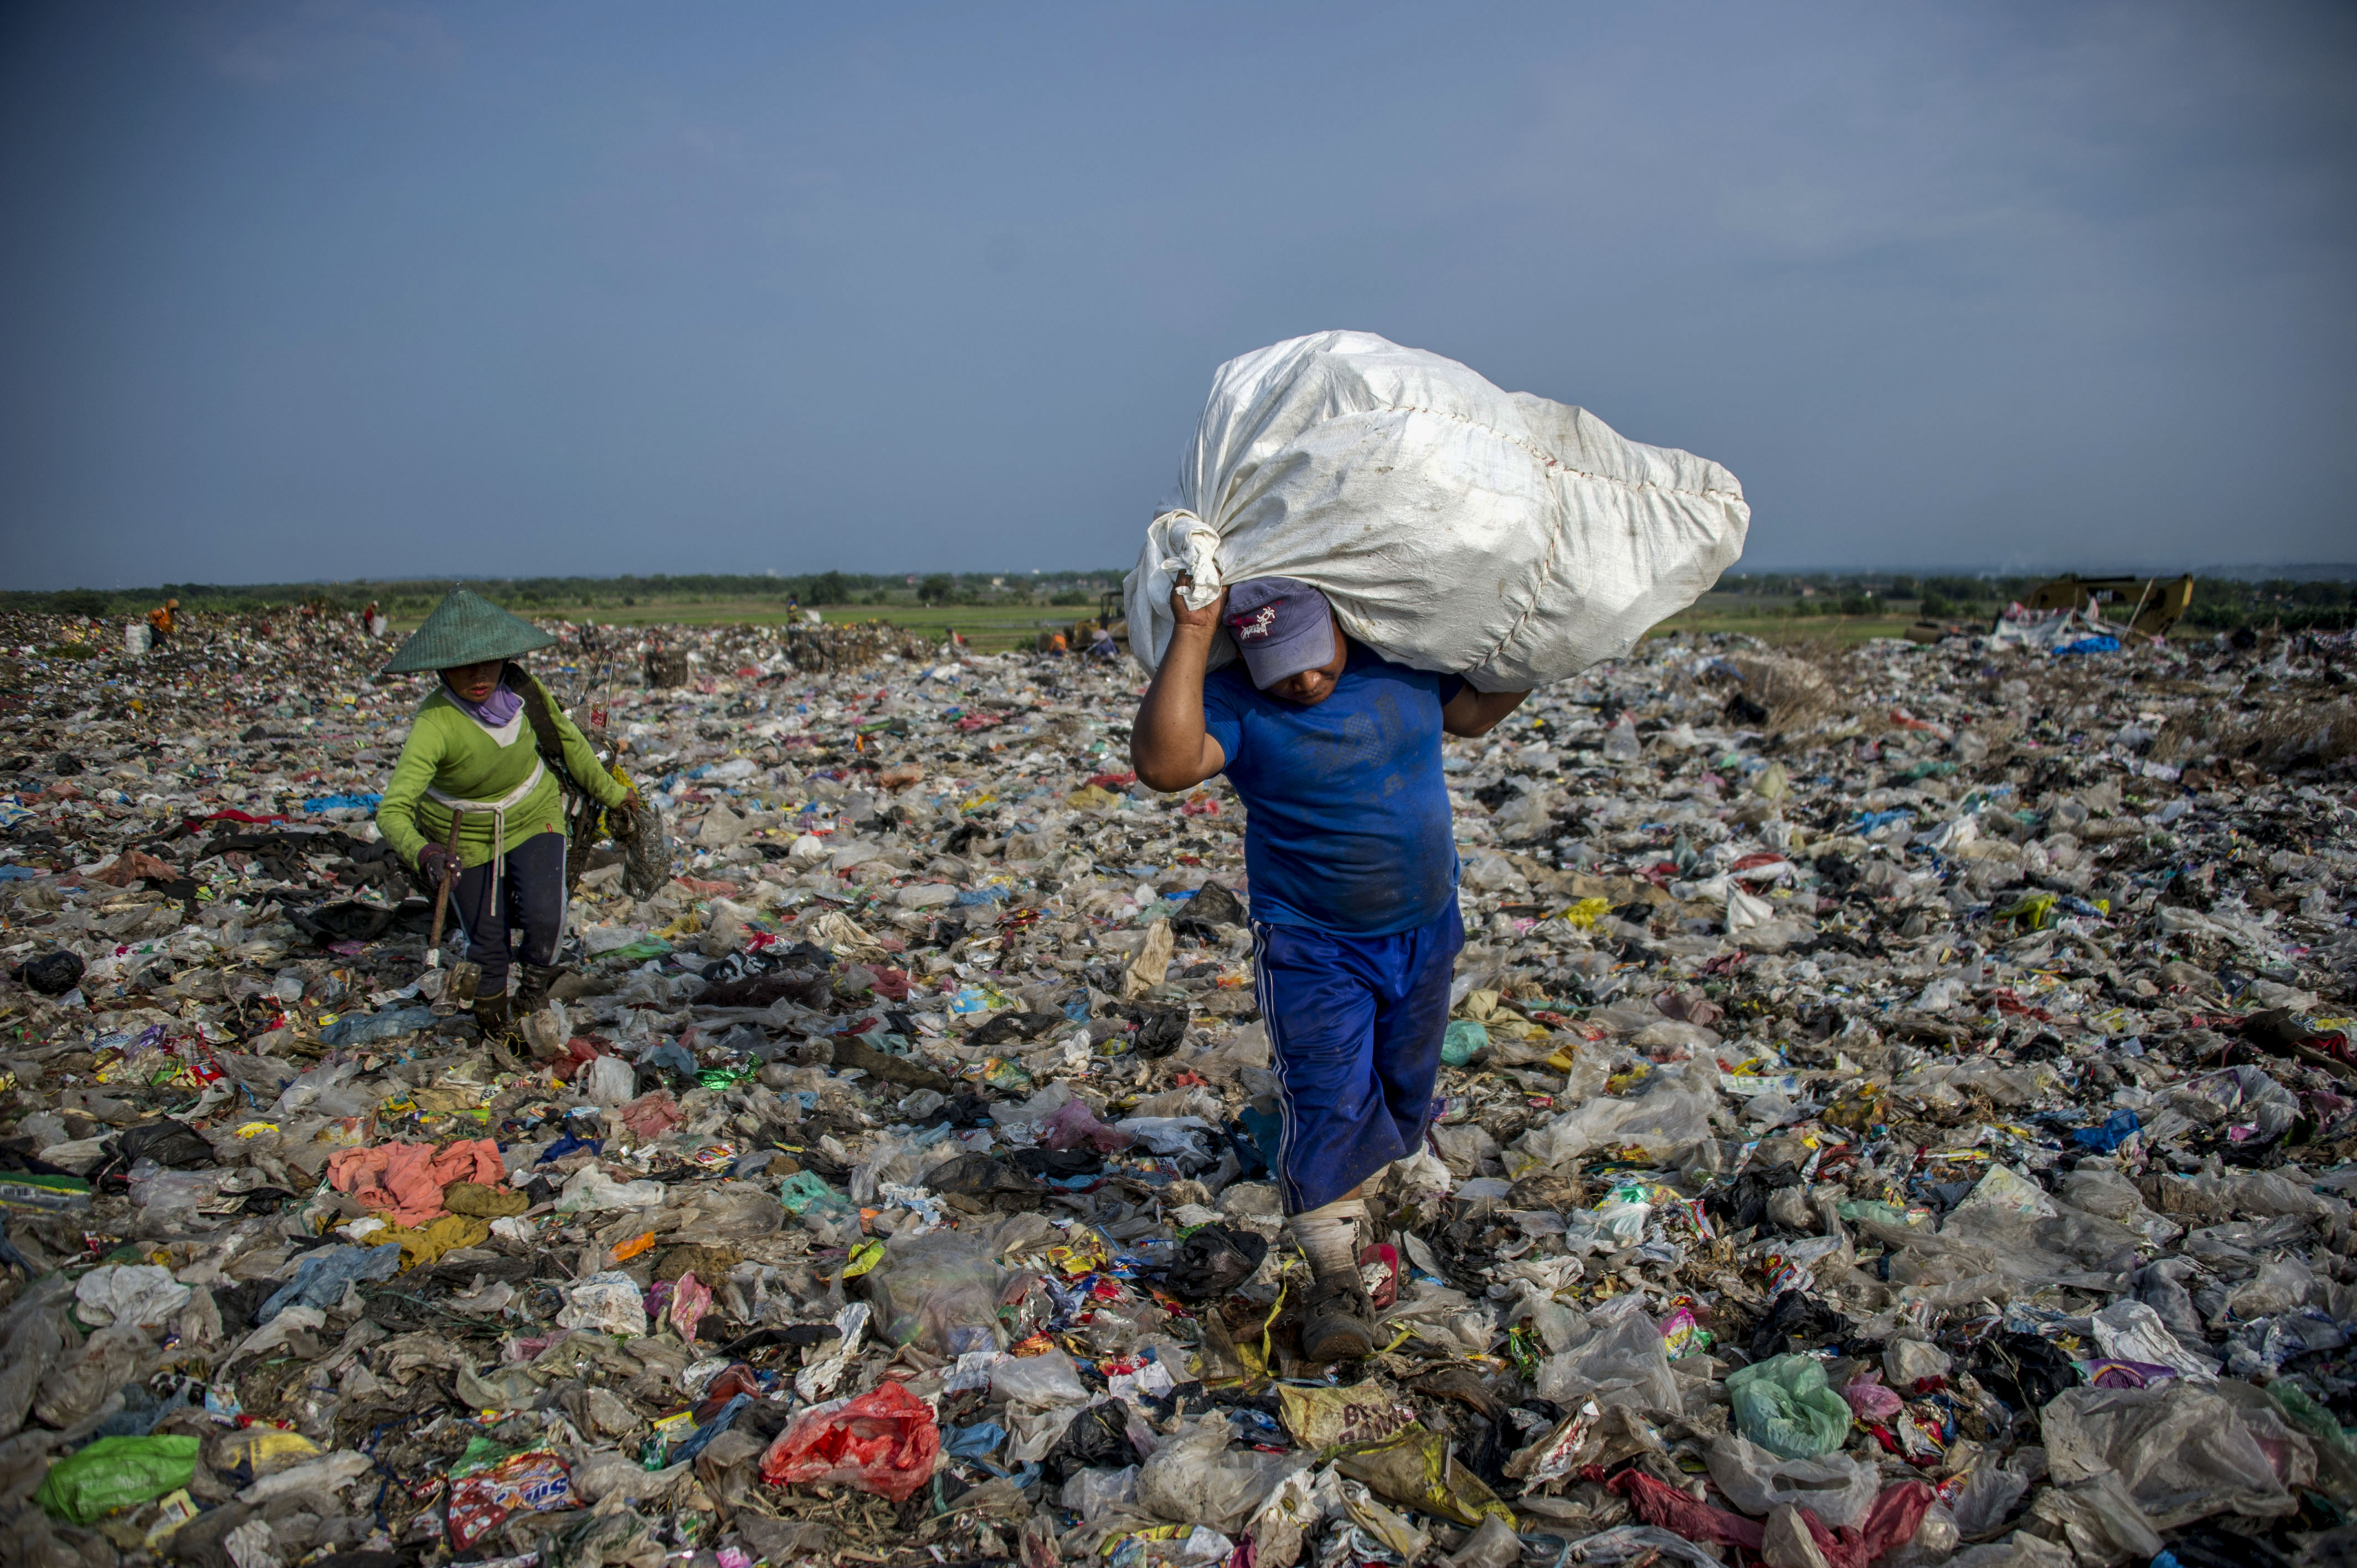 """Nations Agree To """"Significantly"""" Cut Single-Use Plastics Over Next Decade"""